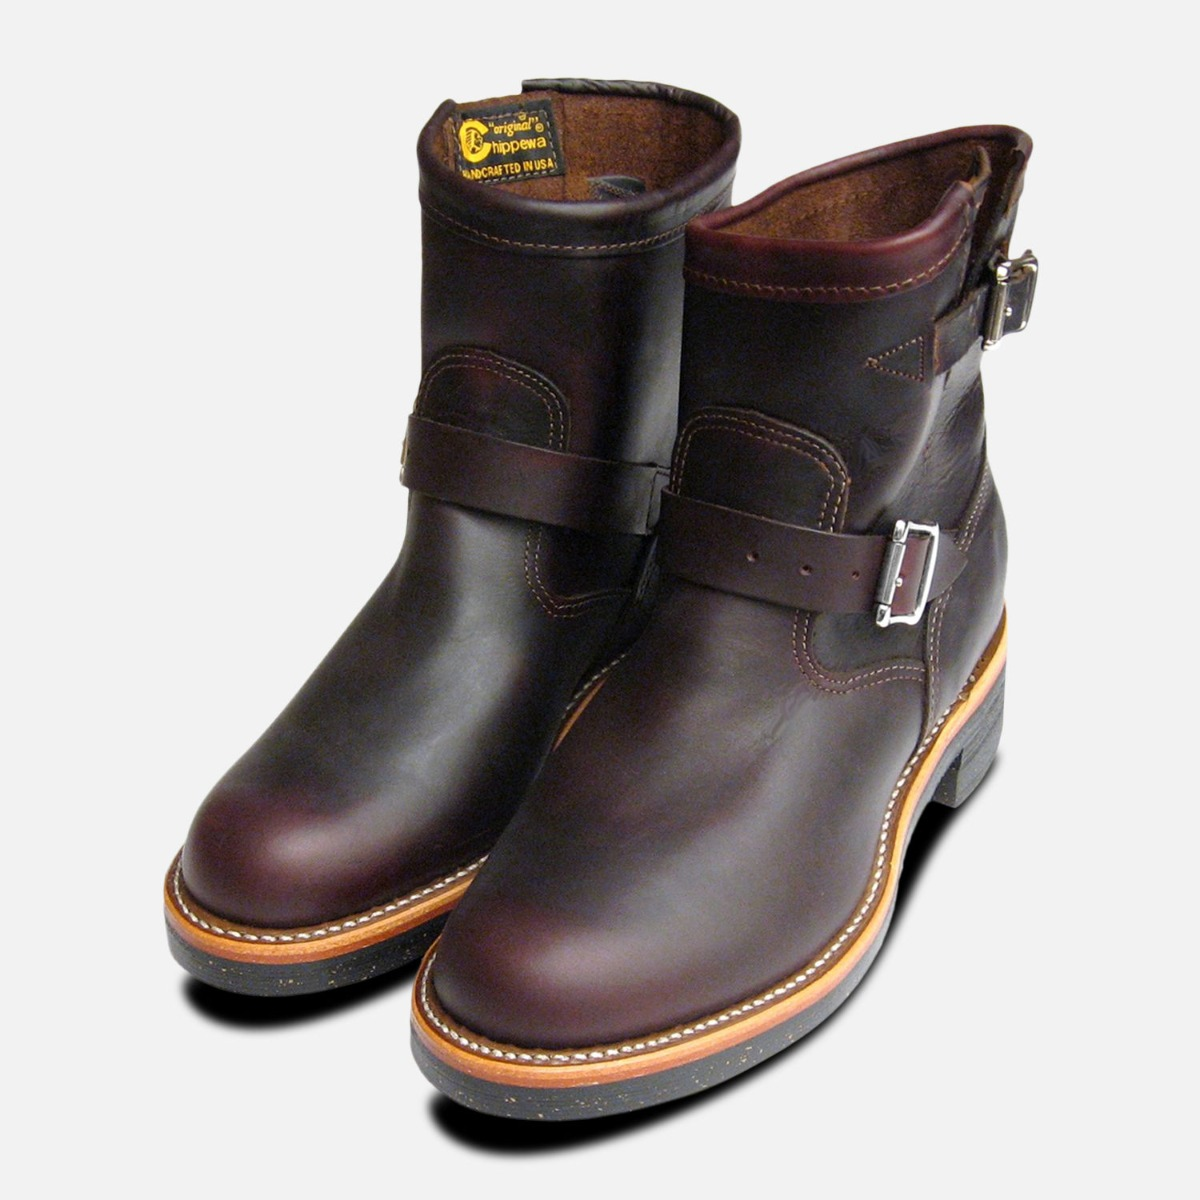 7364663add0 Details about Chippewa Cordovan Oxblood Mens Logger Boots with Vibram Sole